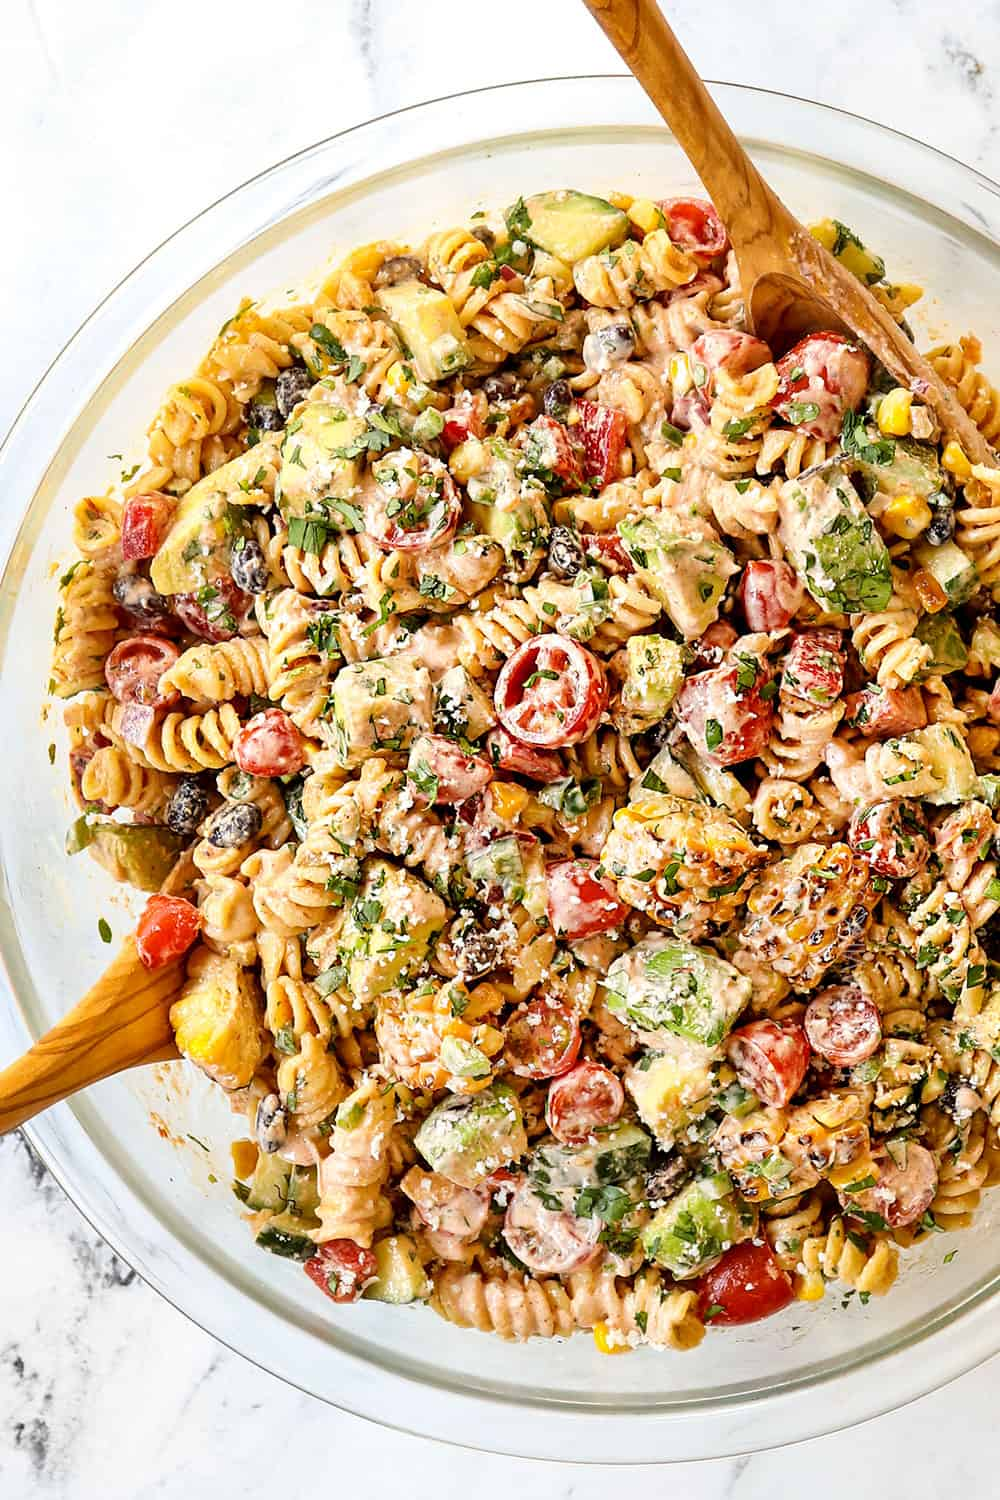 showing how to make Mexican Pasta salad by tossing the dressing and the ingredients together in a glass bowl